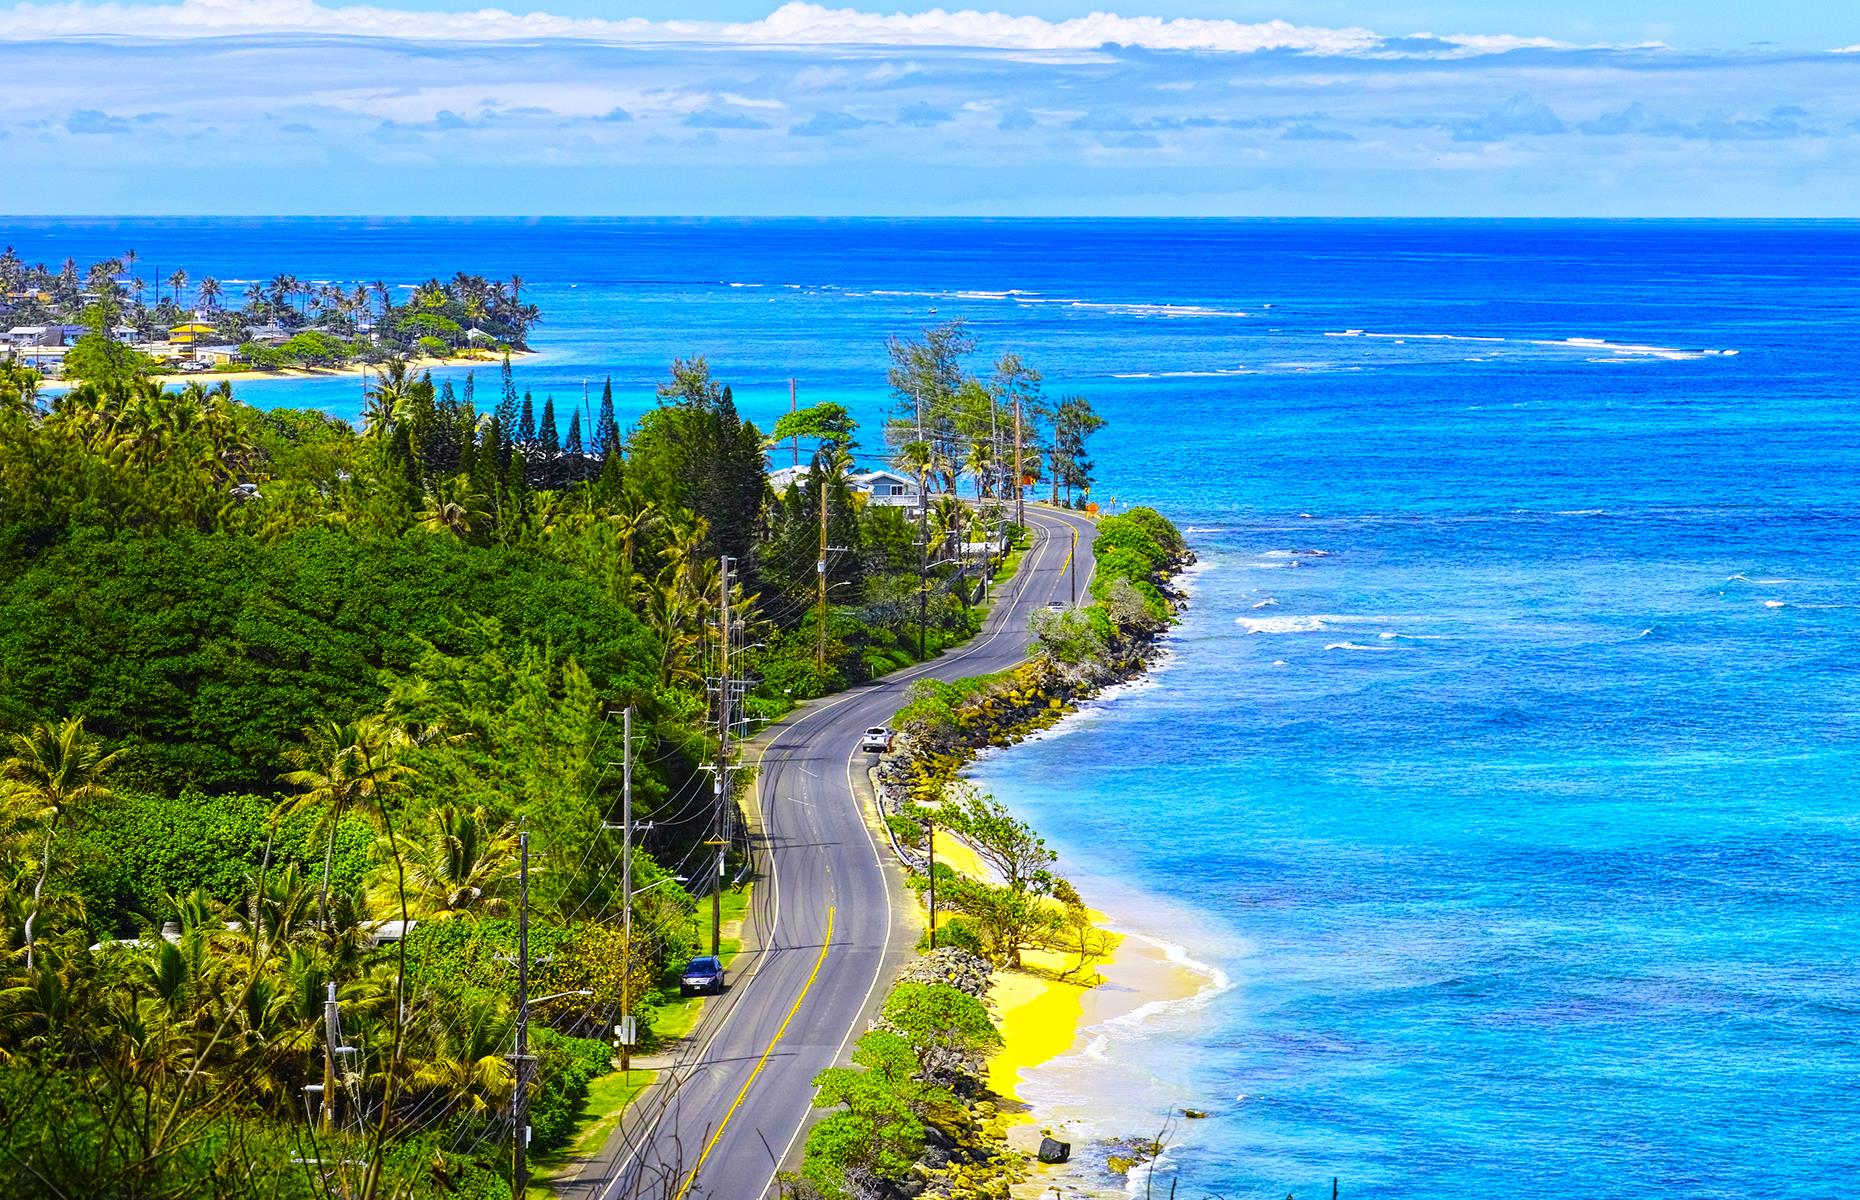 Slide 22 of 101: When it comes to planning road trips, travelers often eschew Hawaii (not least because it's the only state you can't drive to). But there are still plenty of stunning routes to be enjoyed. A favorite is the Kamehameha Highway (pictured). This route takes adventurous road-trippers from buzzing Honolulu to the more remote beaches and towns of Hawaii's North Shore. On this drive, the city of Pūpūkea is around 45 miles from the capital, and the trip involves just over an hour of driving time.